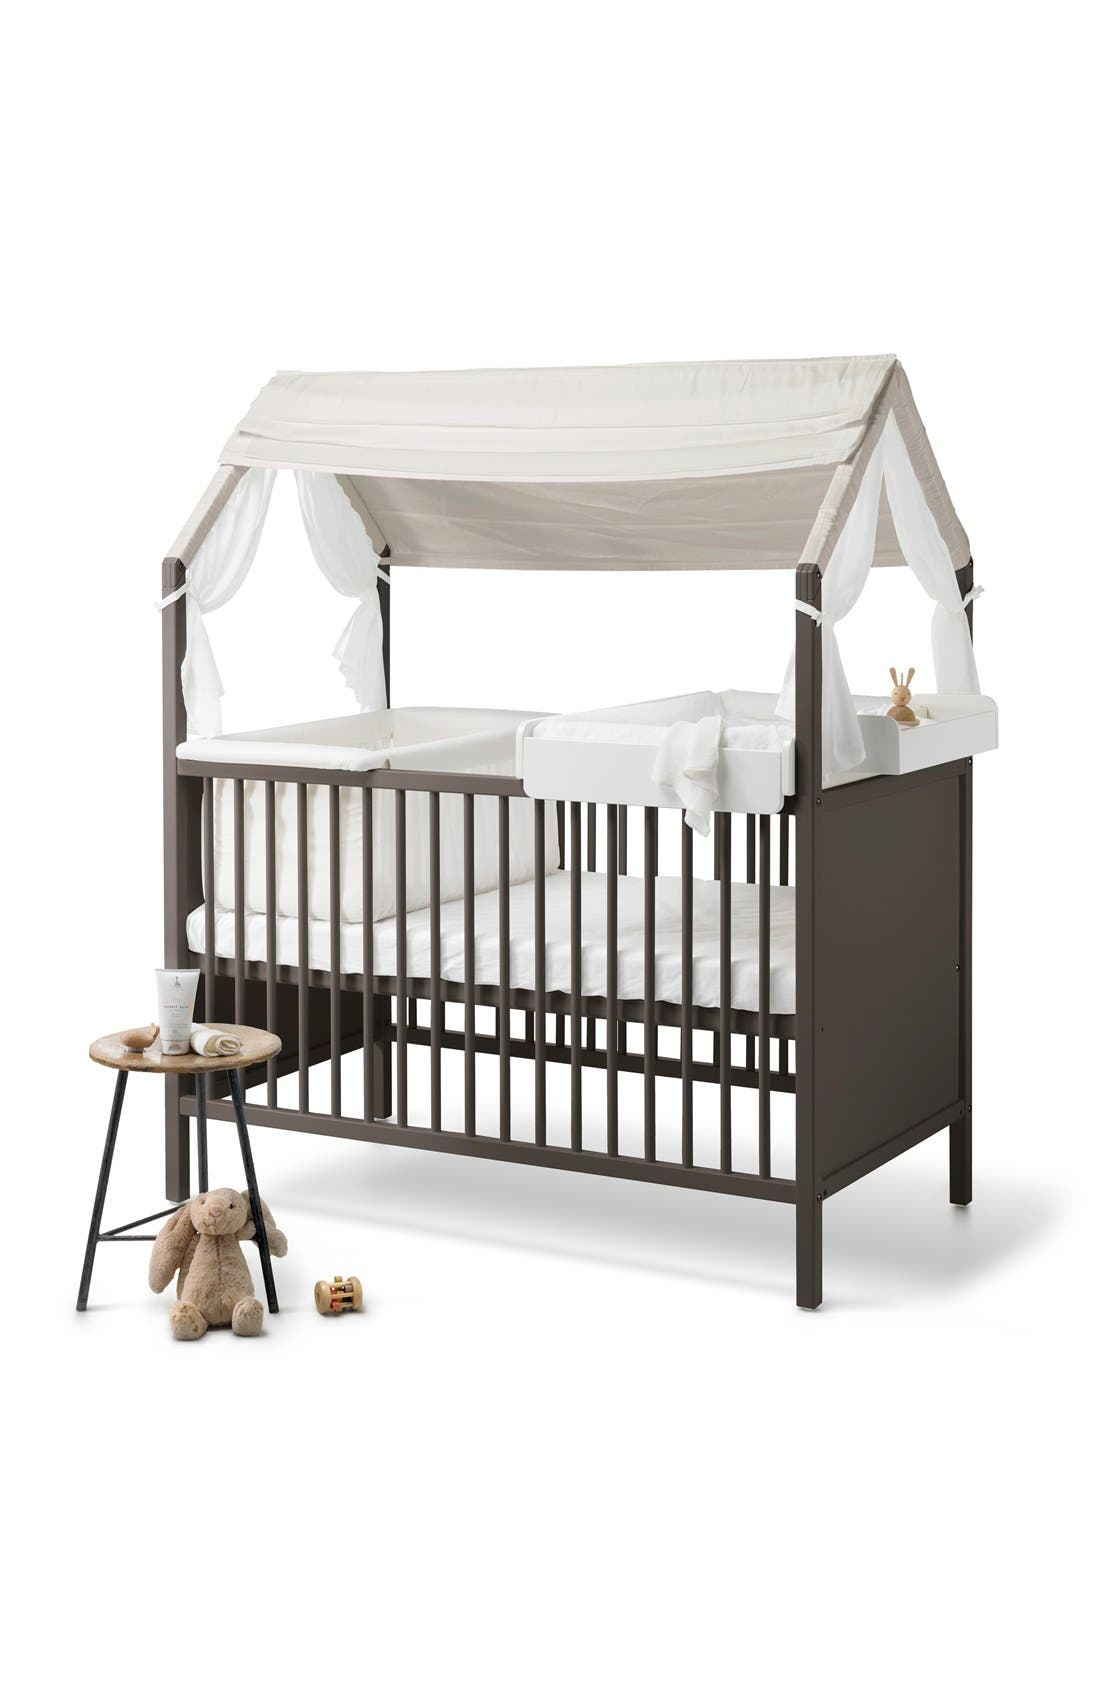 Stokke 'Home™' Roof Canopy